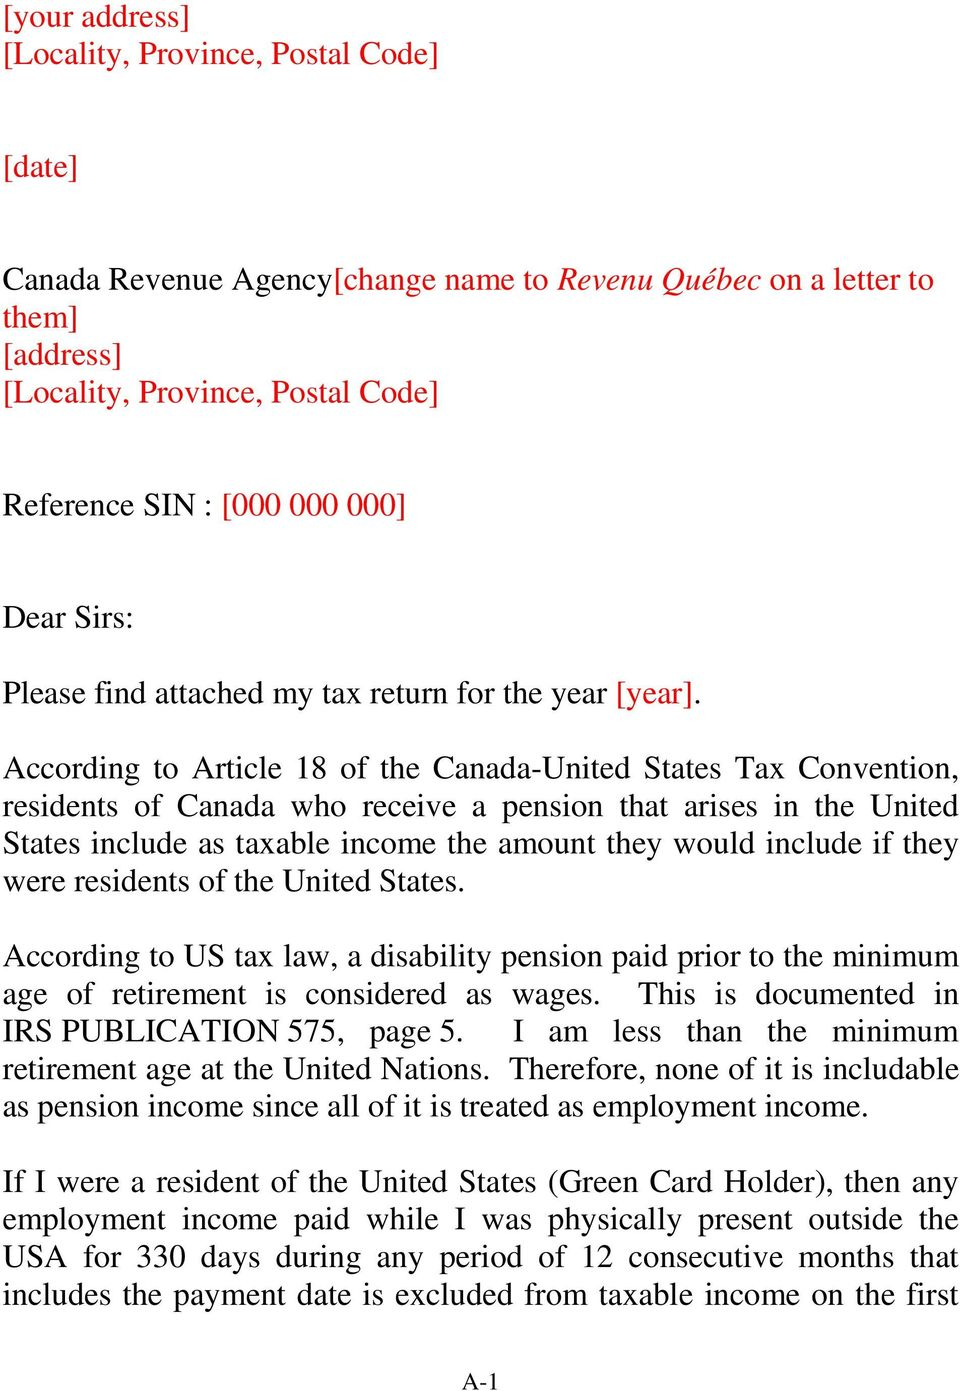 According to Article 18 of the Canada-United States Tax Convention, residents of Canada who receive a pension that arises in the United States include as taxable income the amount they would include